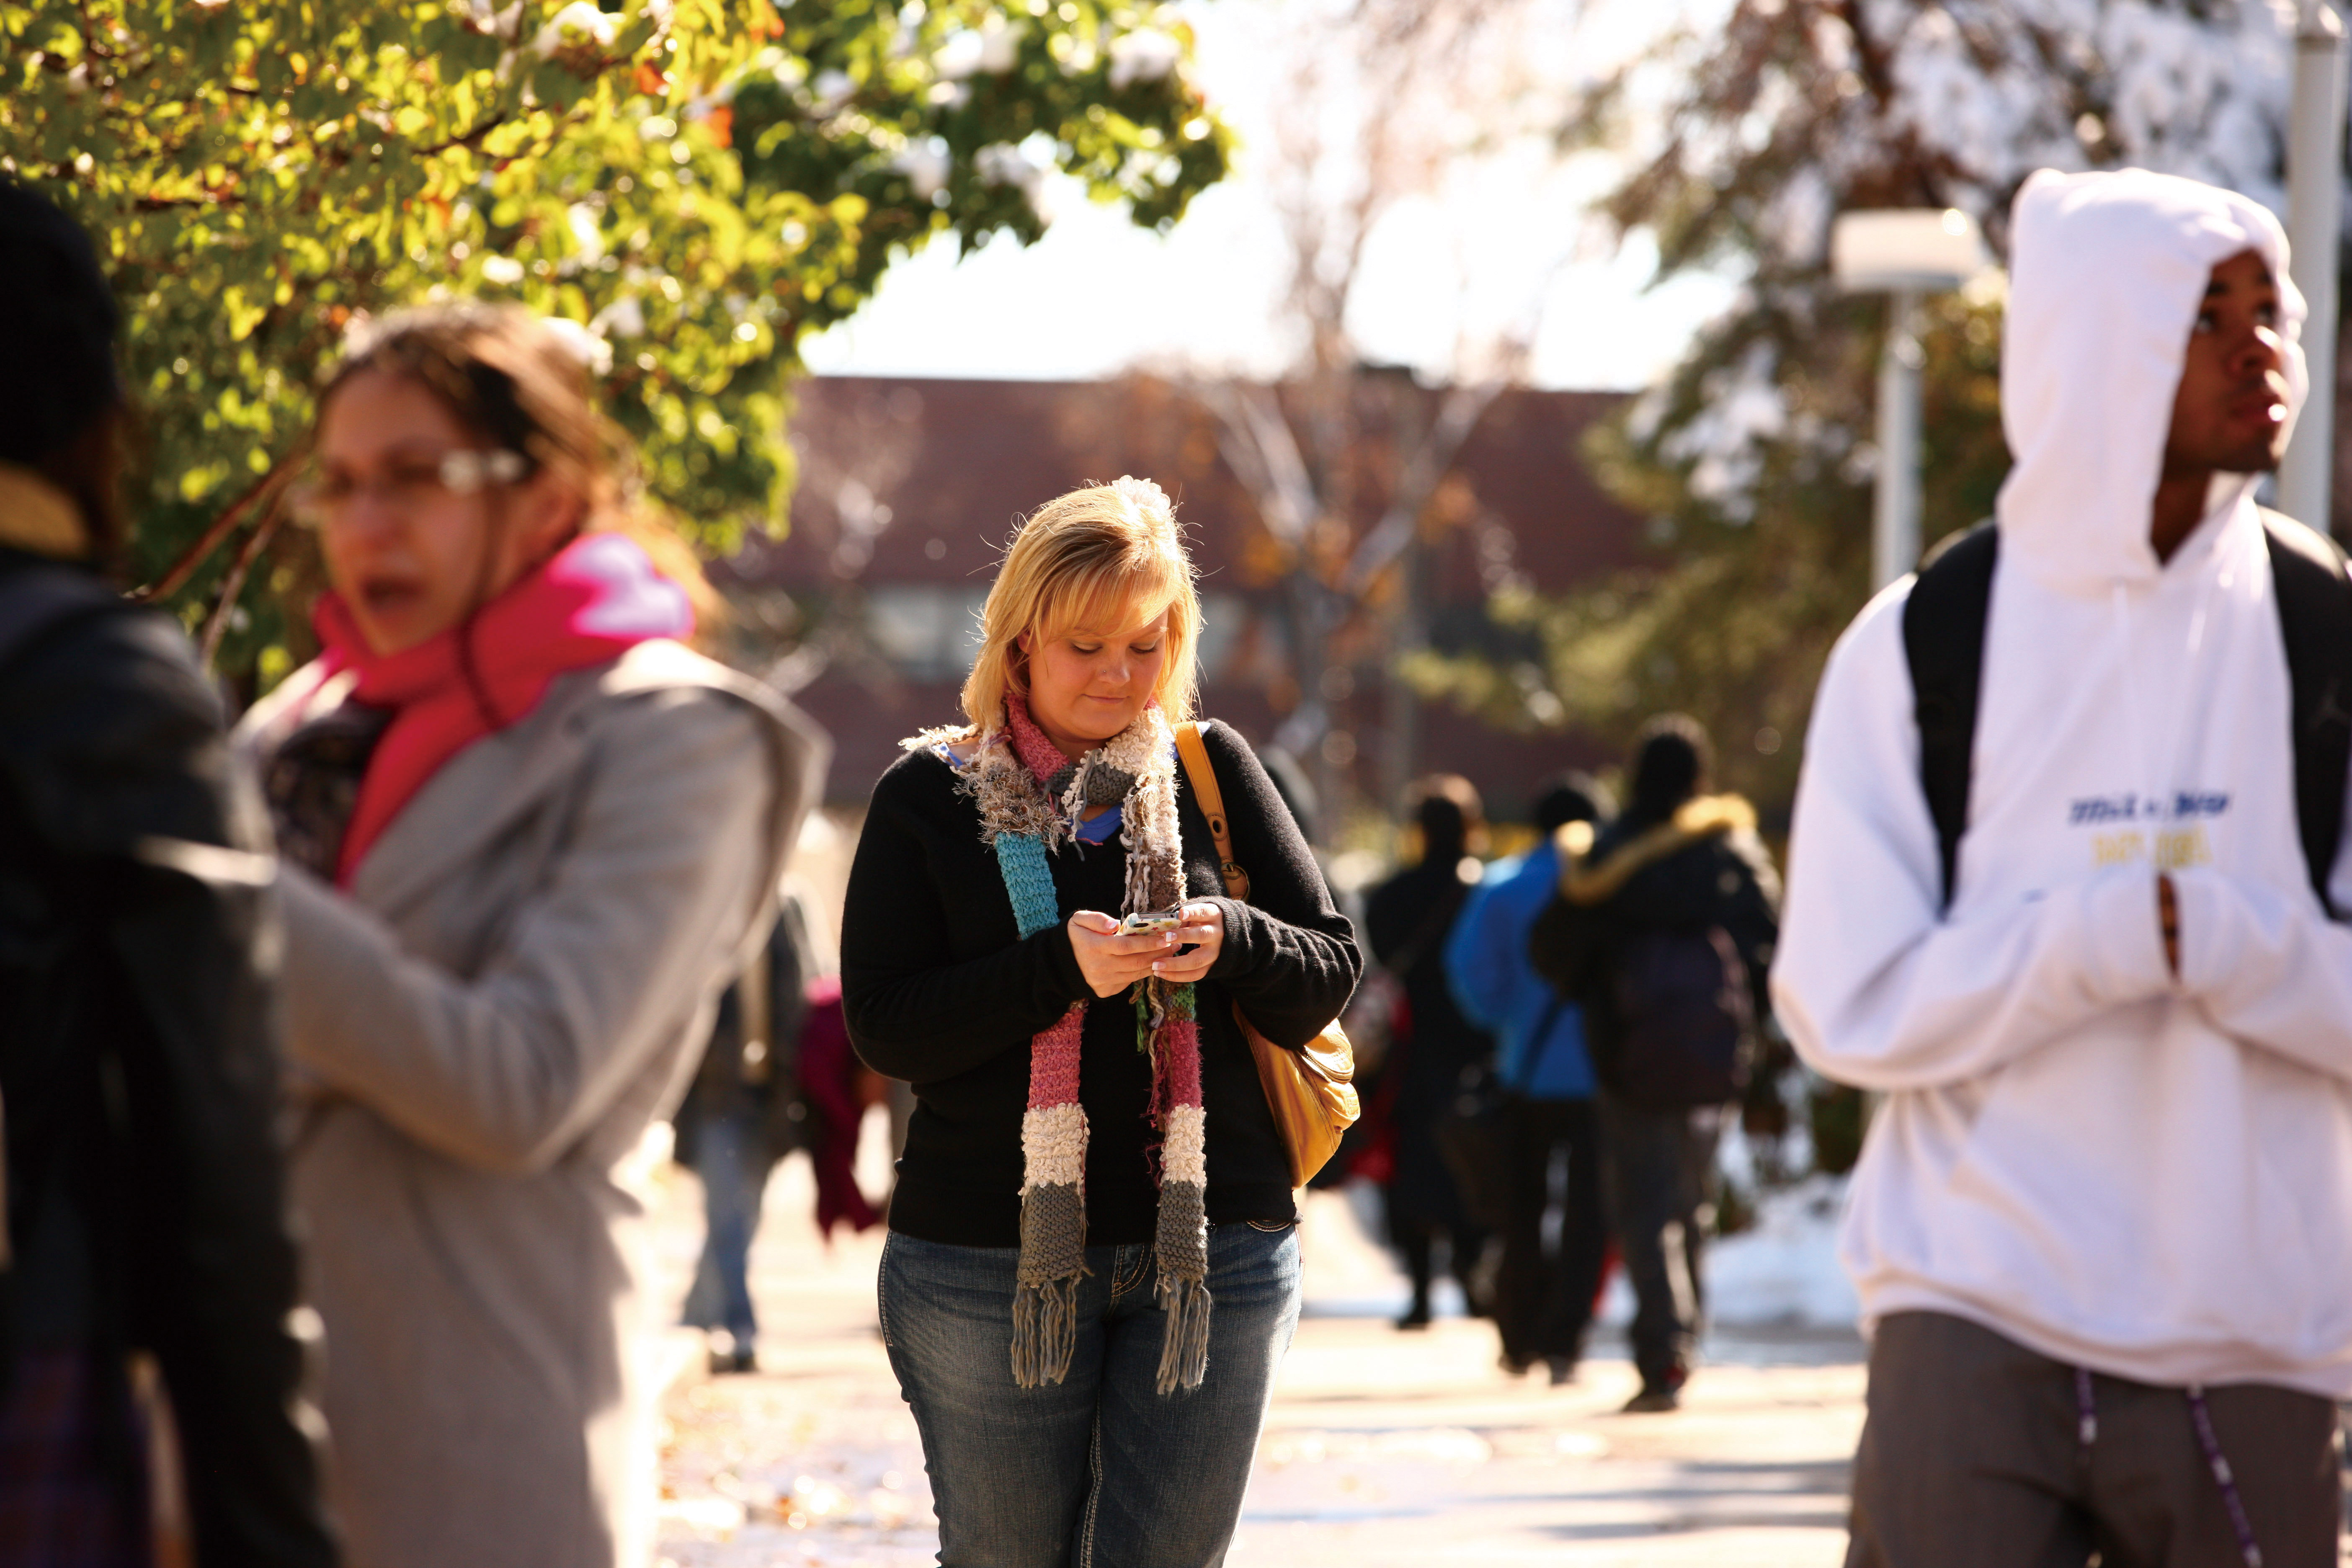 Shana Hensley, who said cellphone apps are convenient when looking for a date, looks at her phone in Denver, on Oct. 27, 2011. (The New York Times)